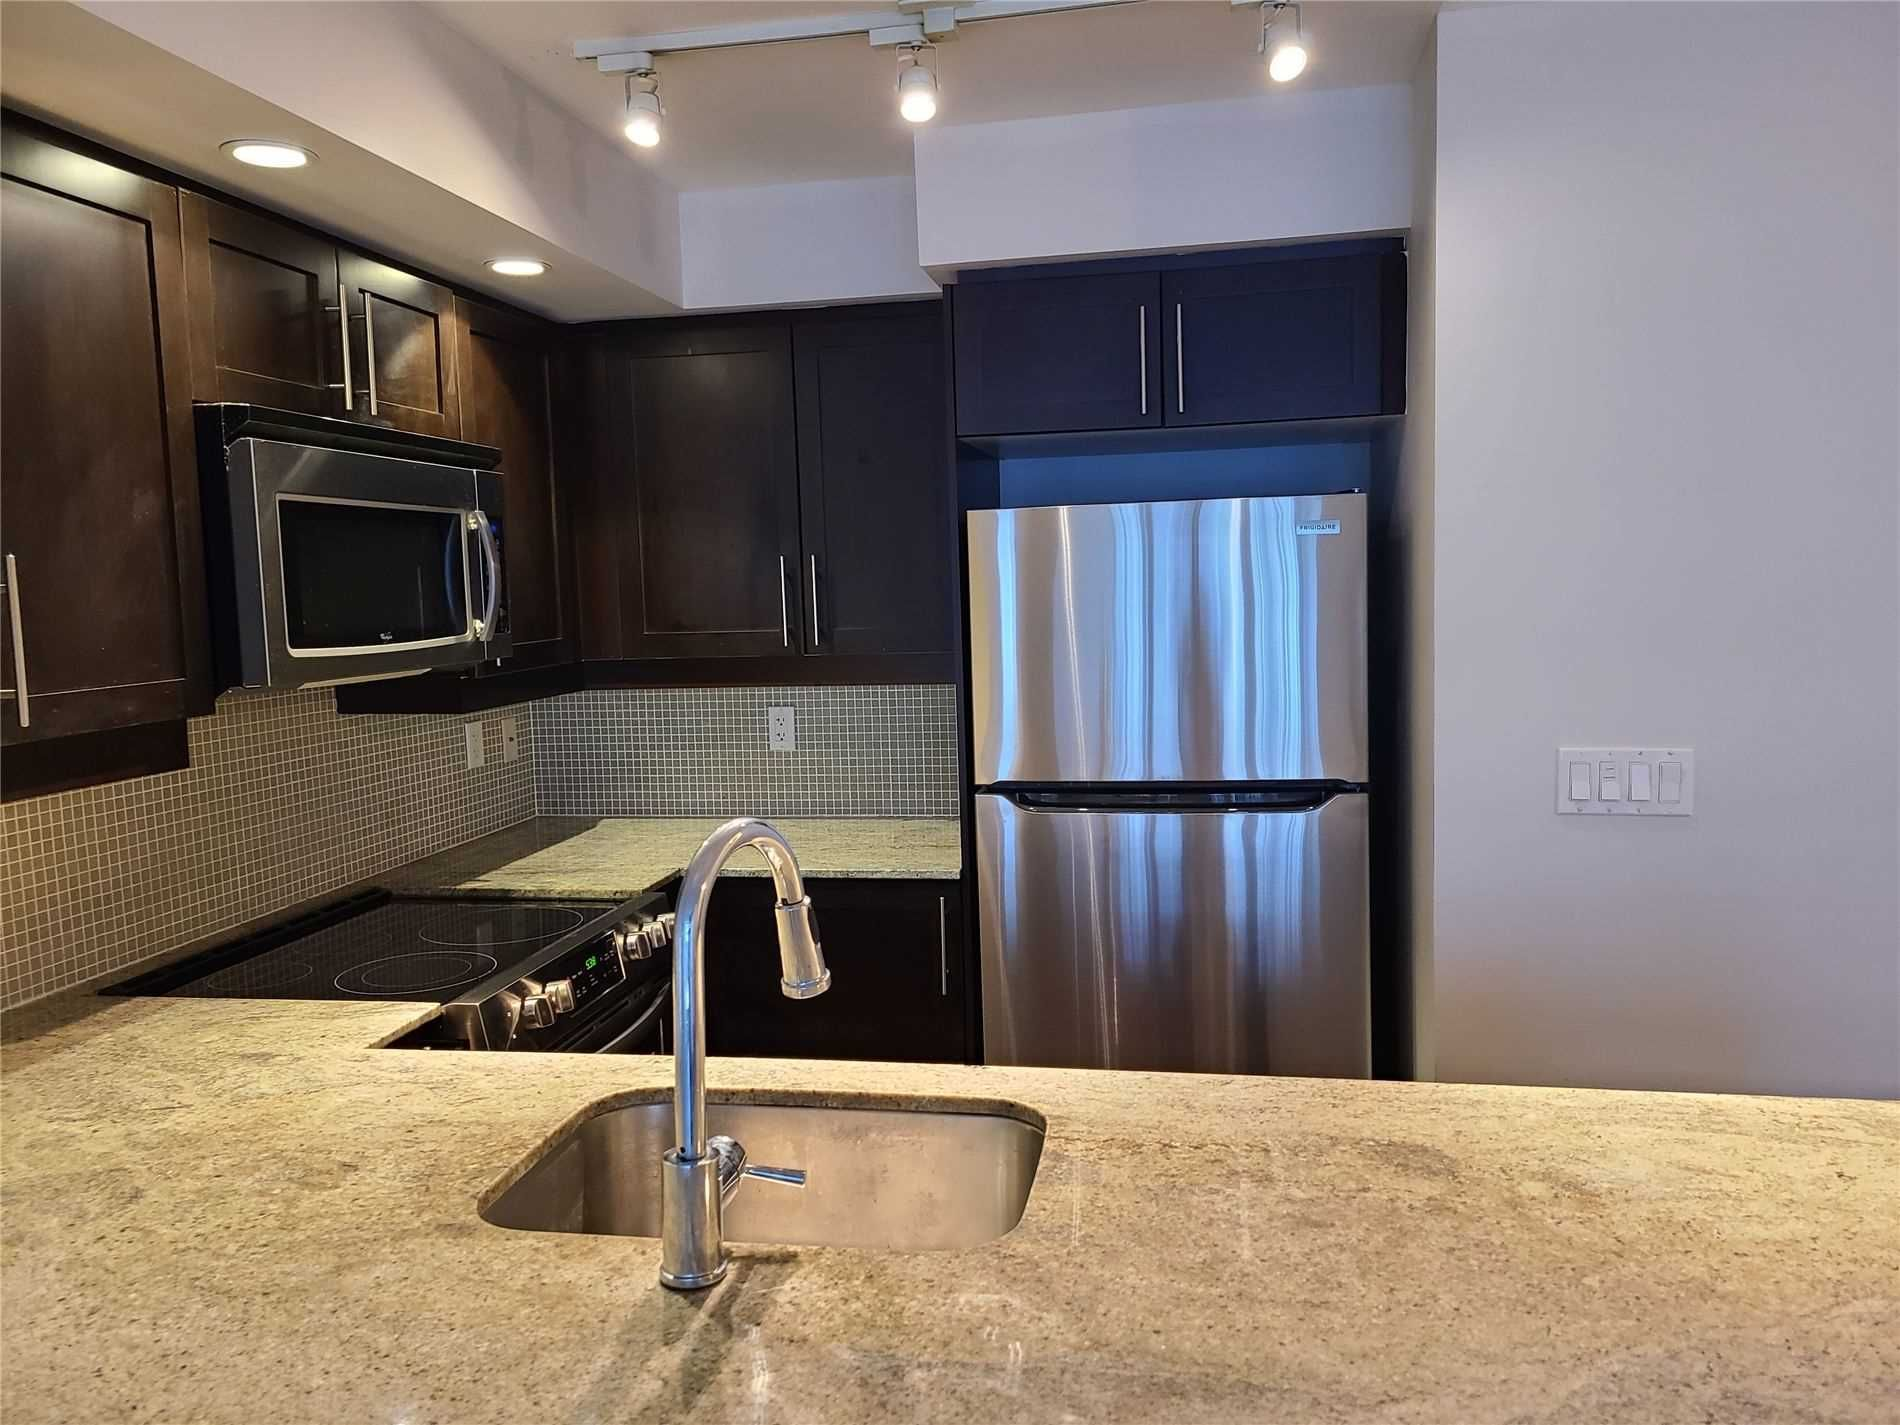 65 East Liberty St, unit 419 for rent in Toronto - image #2